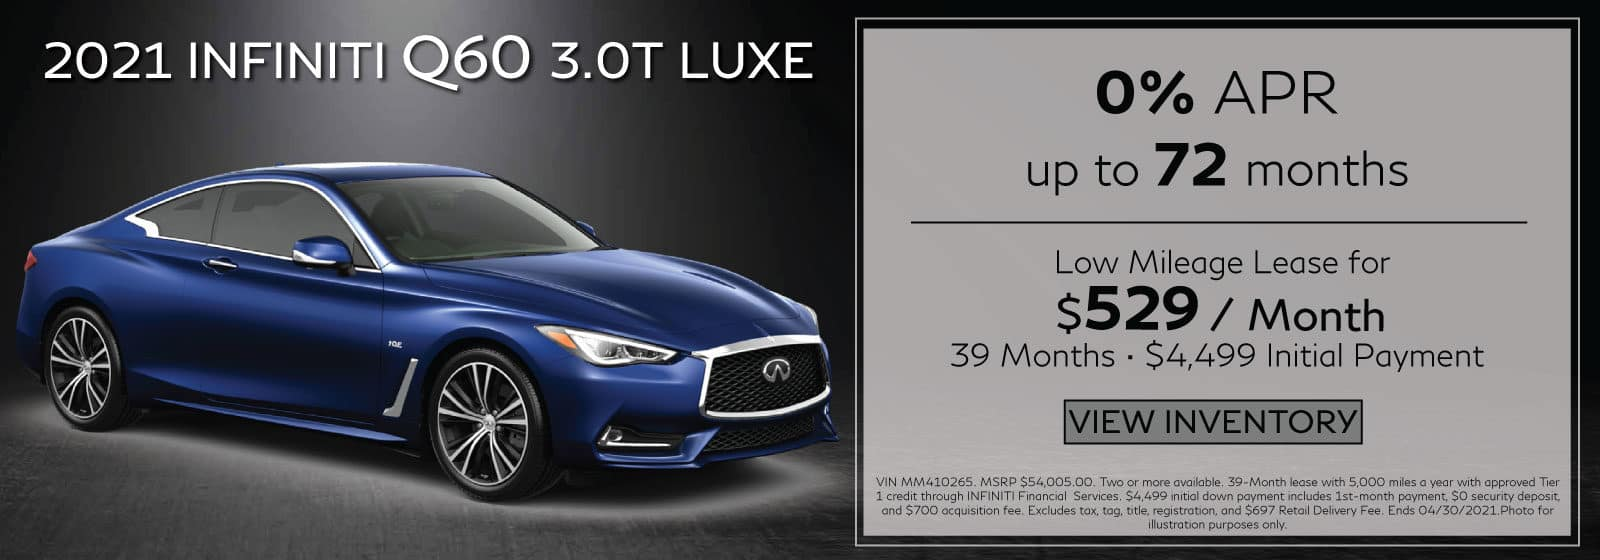 2021 Q60 3.0t LUXE. $529/mo for 39 months. $4,499 Initial Payment